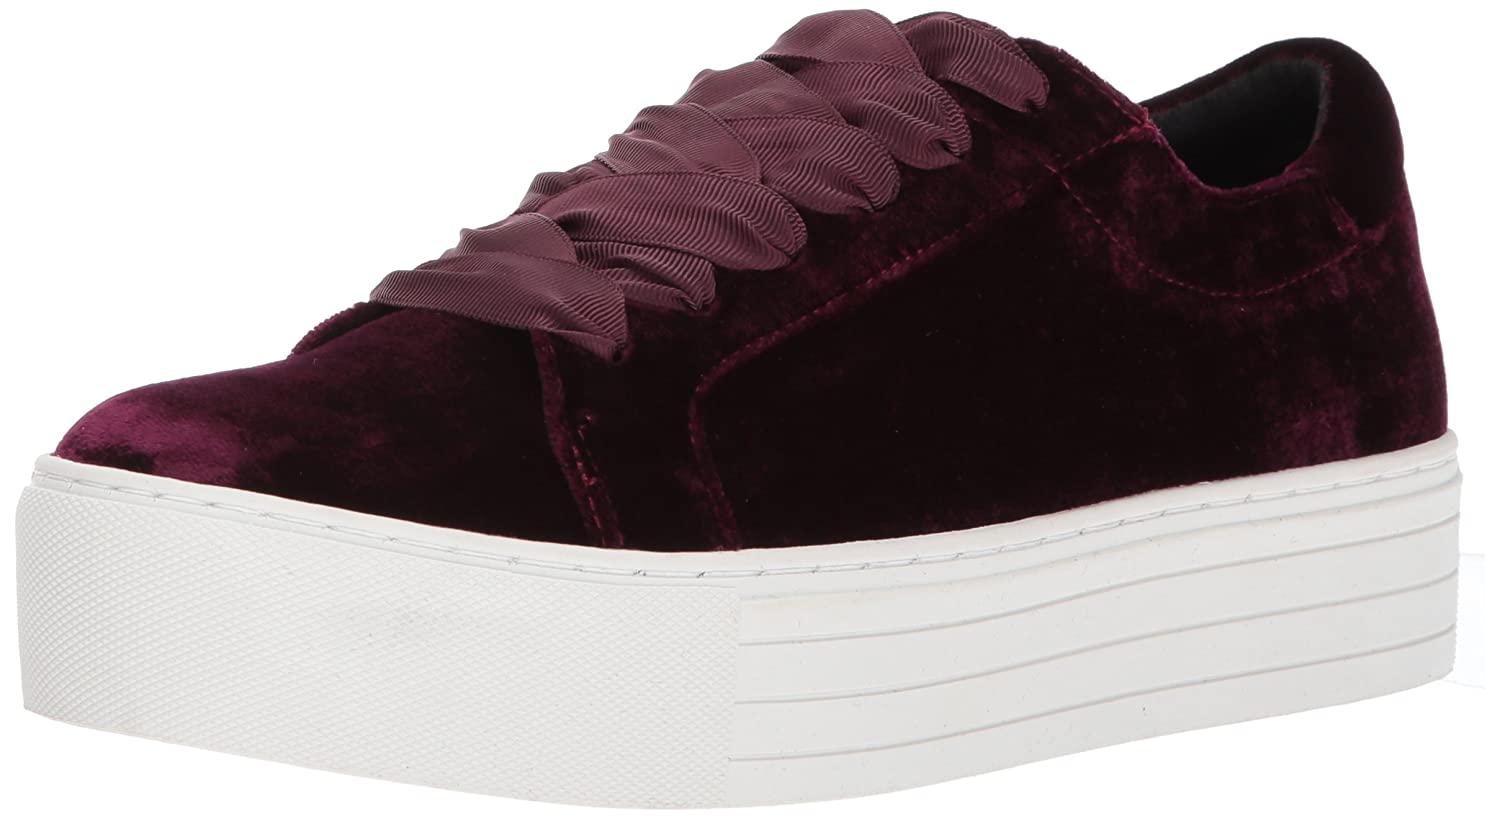 Kenneth Cole New York Women's Abbey Platform Lace up Velvet Fashion Sneaker B071XNXN1S 6.5 B(M) US|Wine